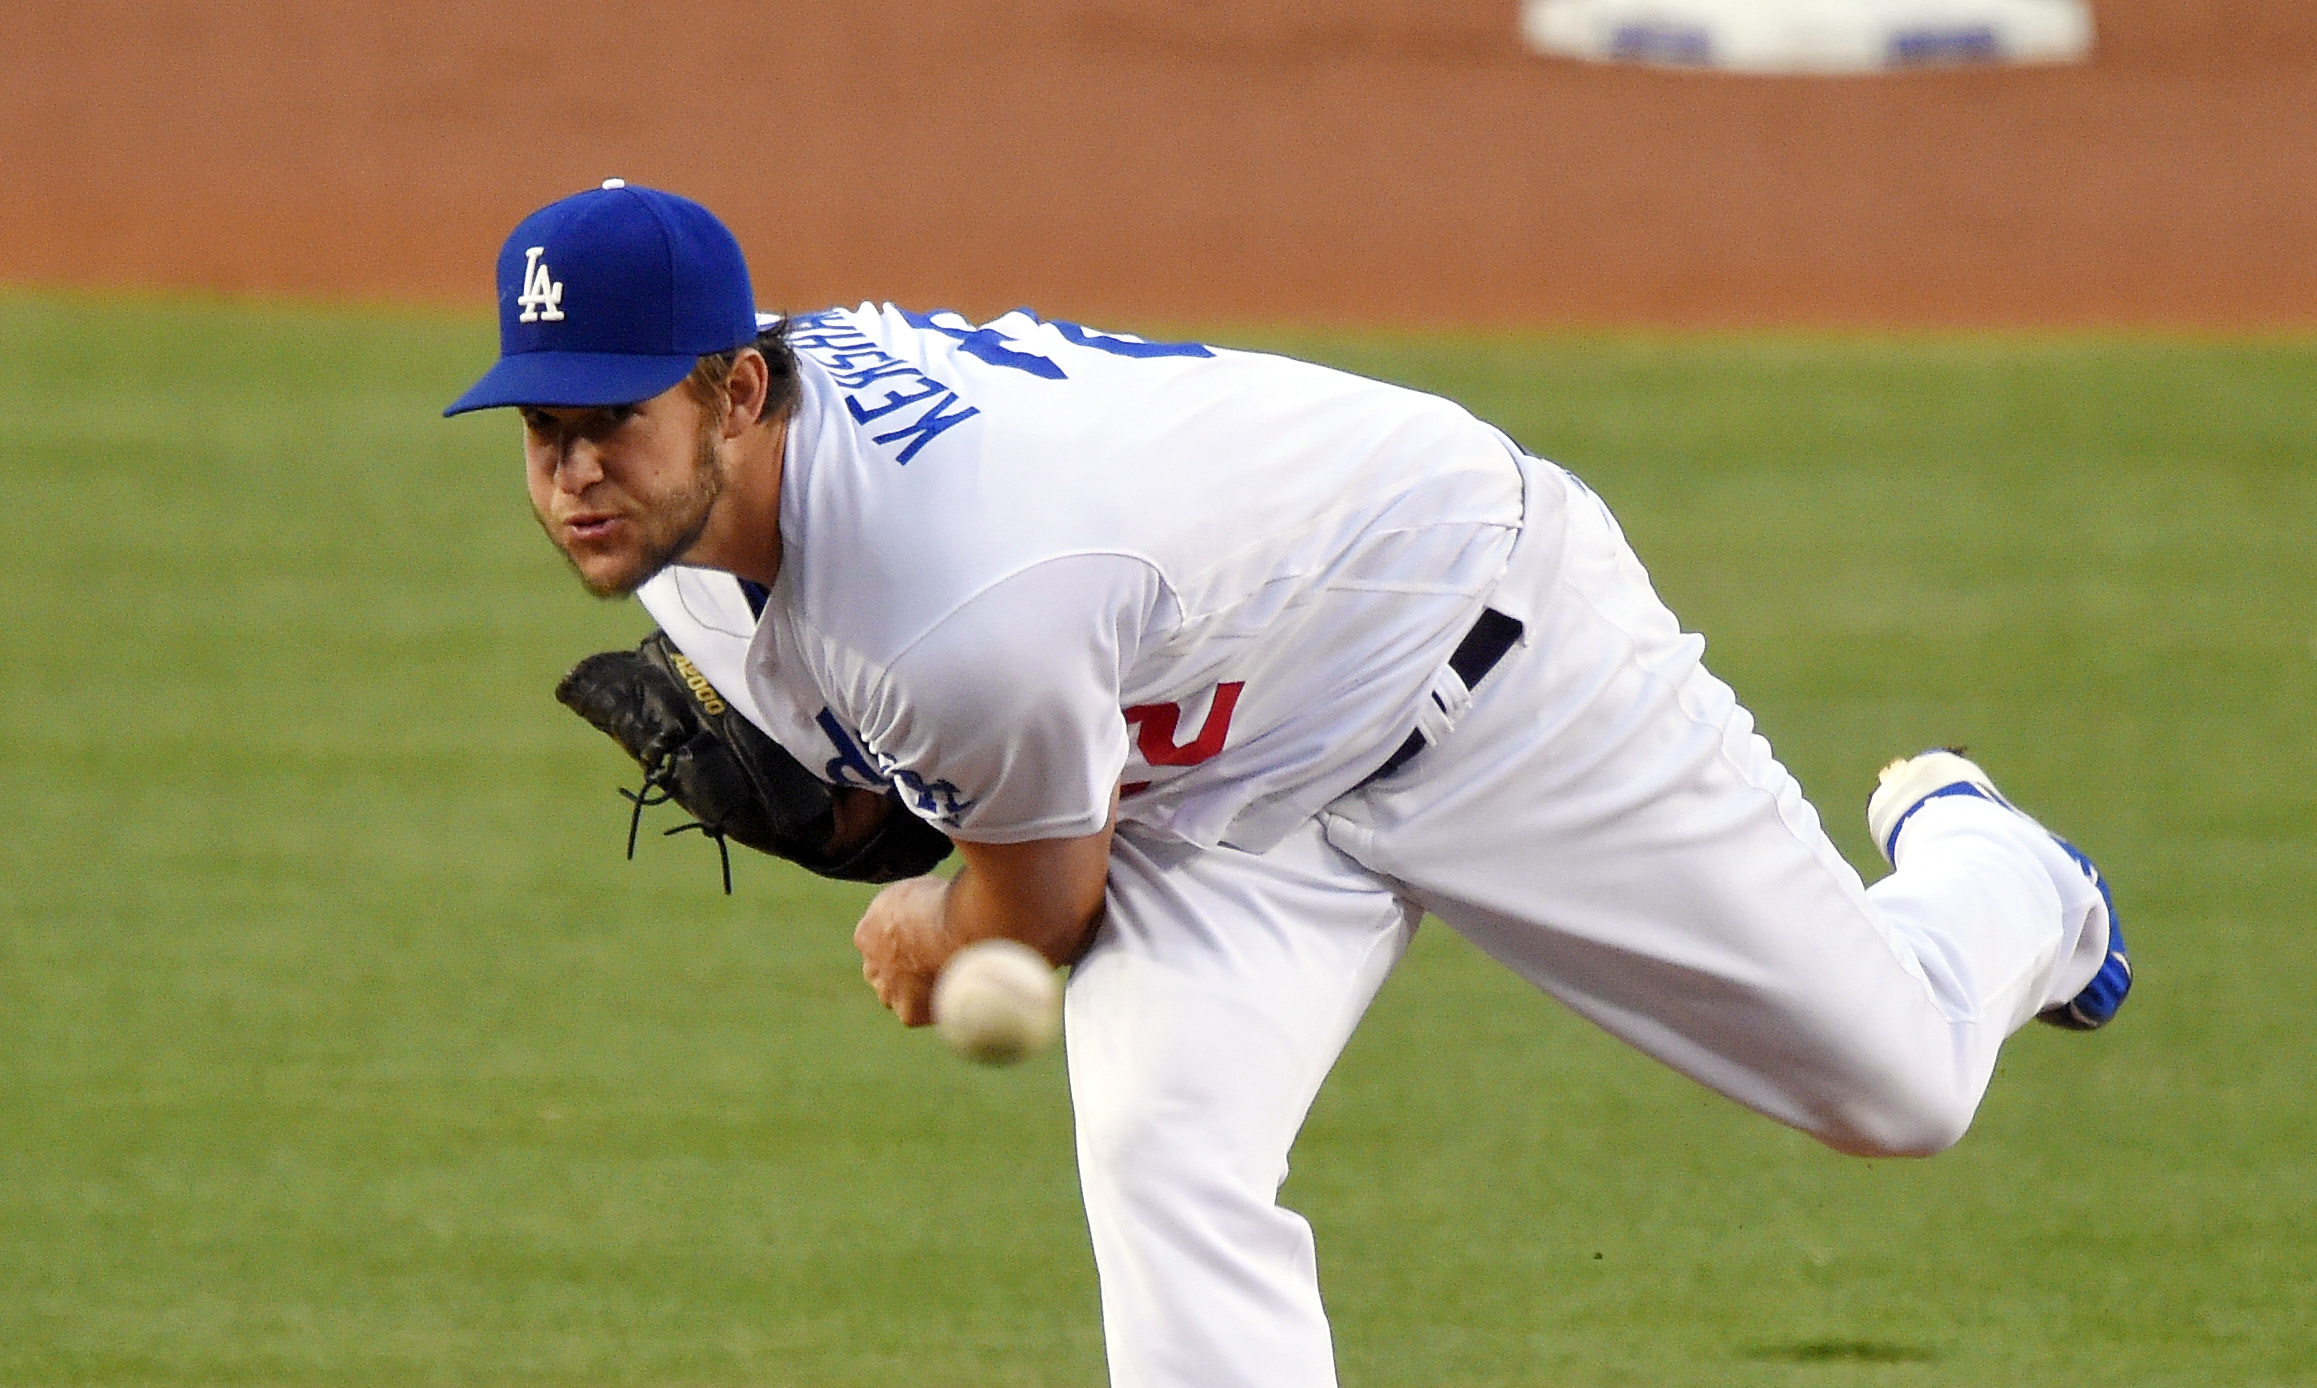 Los Angeles Dodgers starting pitcher Clayton Kershaw throws during the second inning of a baseball game against the Los Angeles Angels, Tuesday, May 17, 2016, in Los Angeles. (AP Photo/Mark J. Terrill)